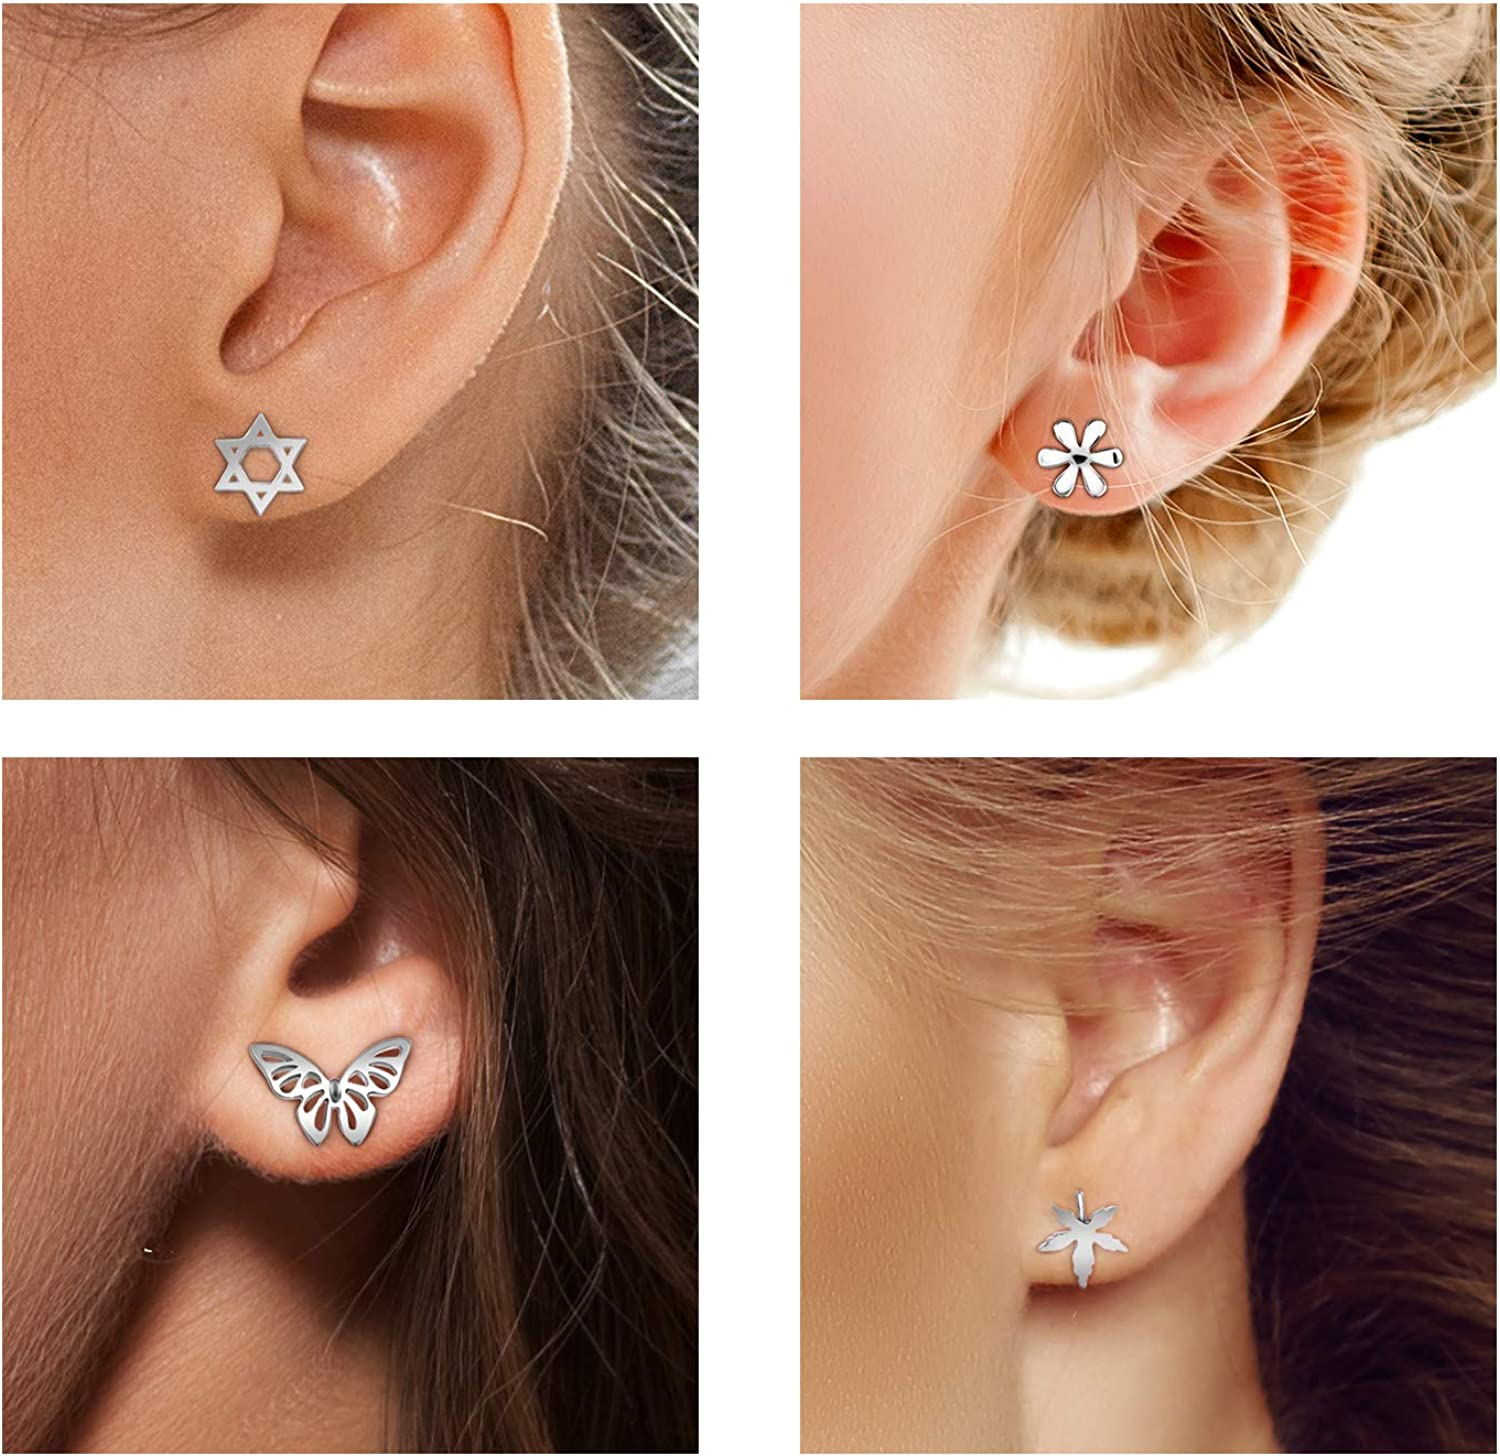 Everyday Jewelry Gift for her Earrings Set of 5 pairs Teeny Tiny Stud Simple Jewellery. Free Shipping Save 47/%